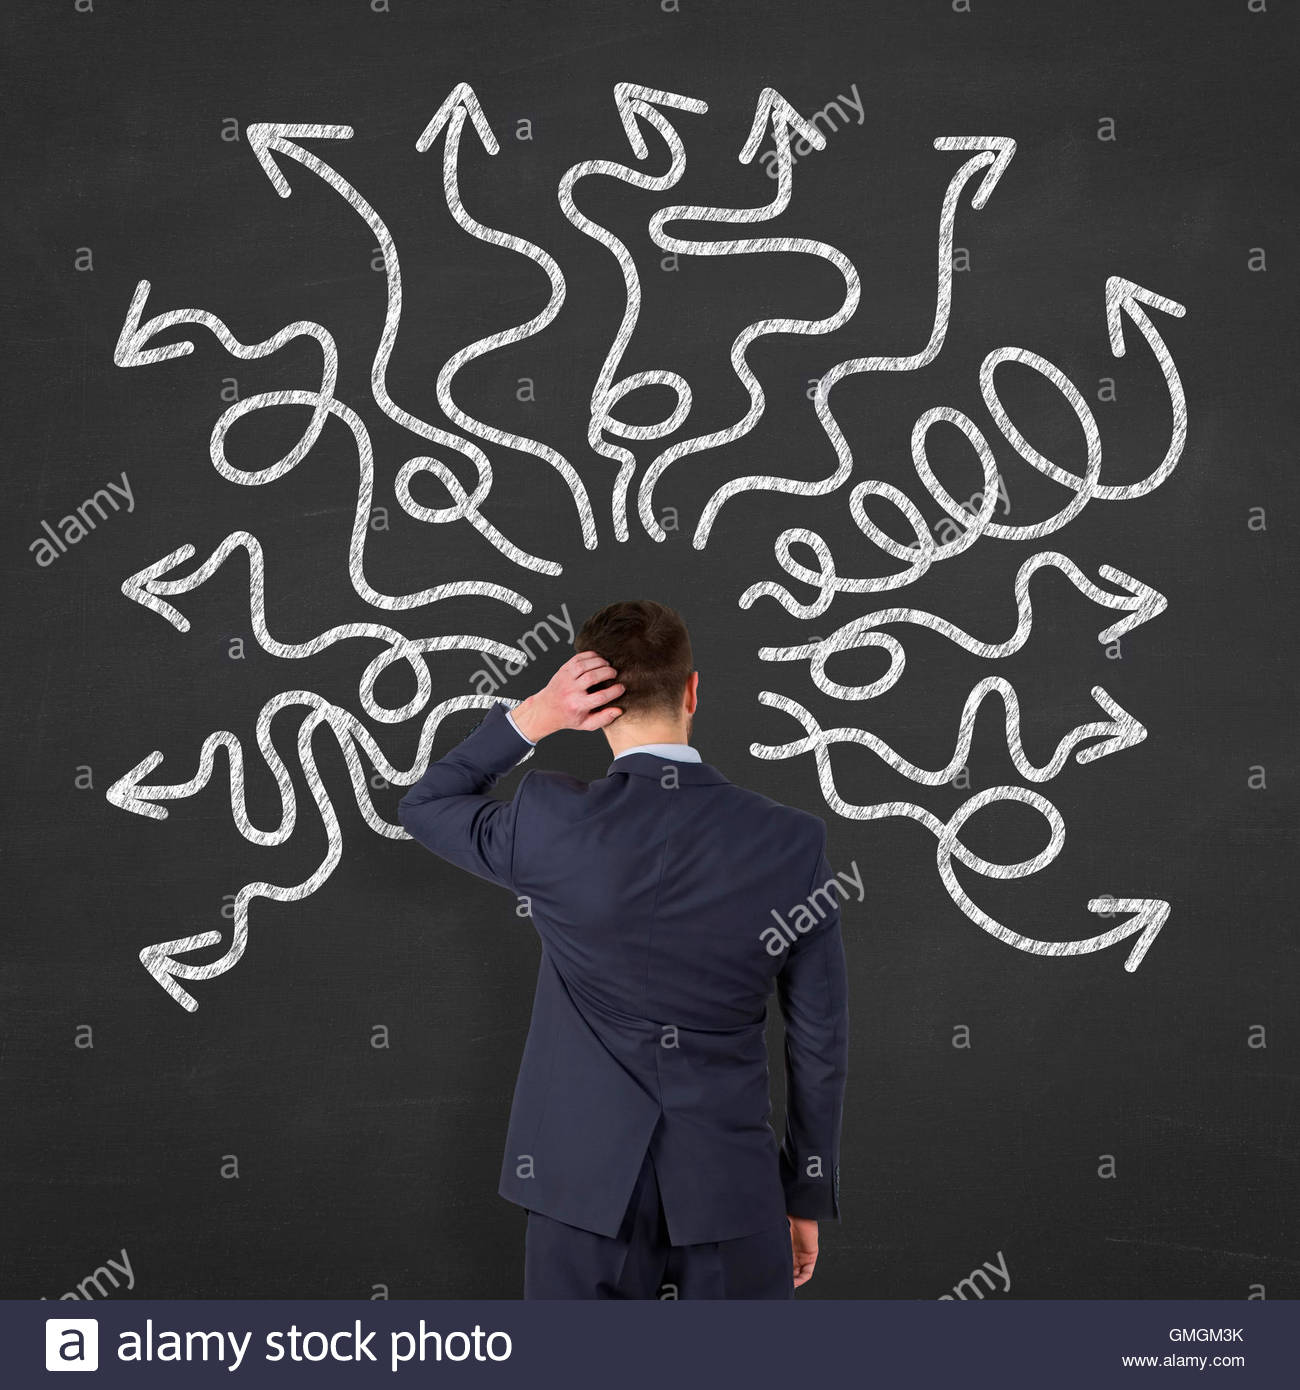 Instability on Blackboard Background indecision, uncertainty, opportunity, adversity, decisions, plan, determination, - Stock Image